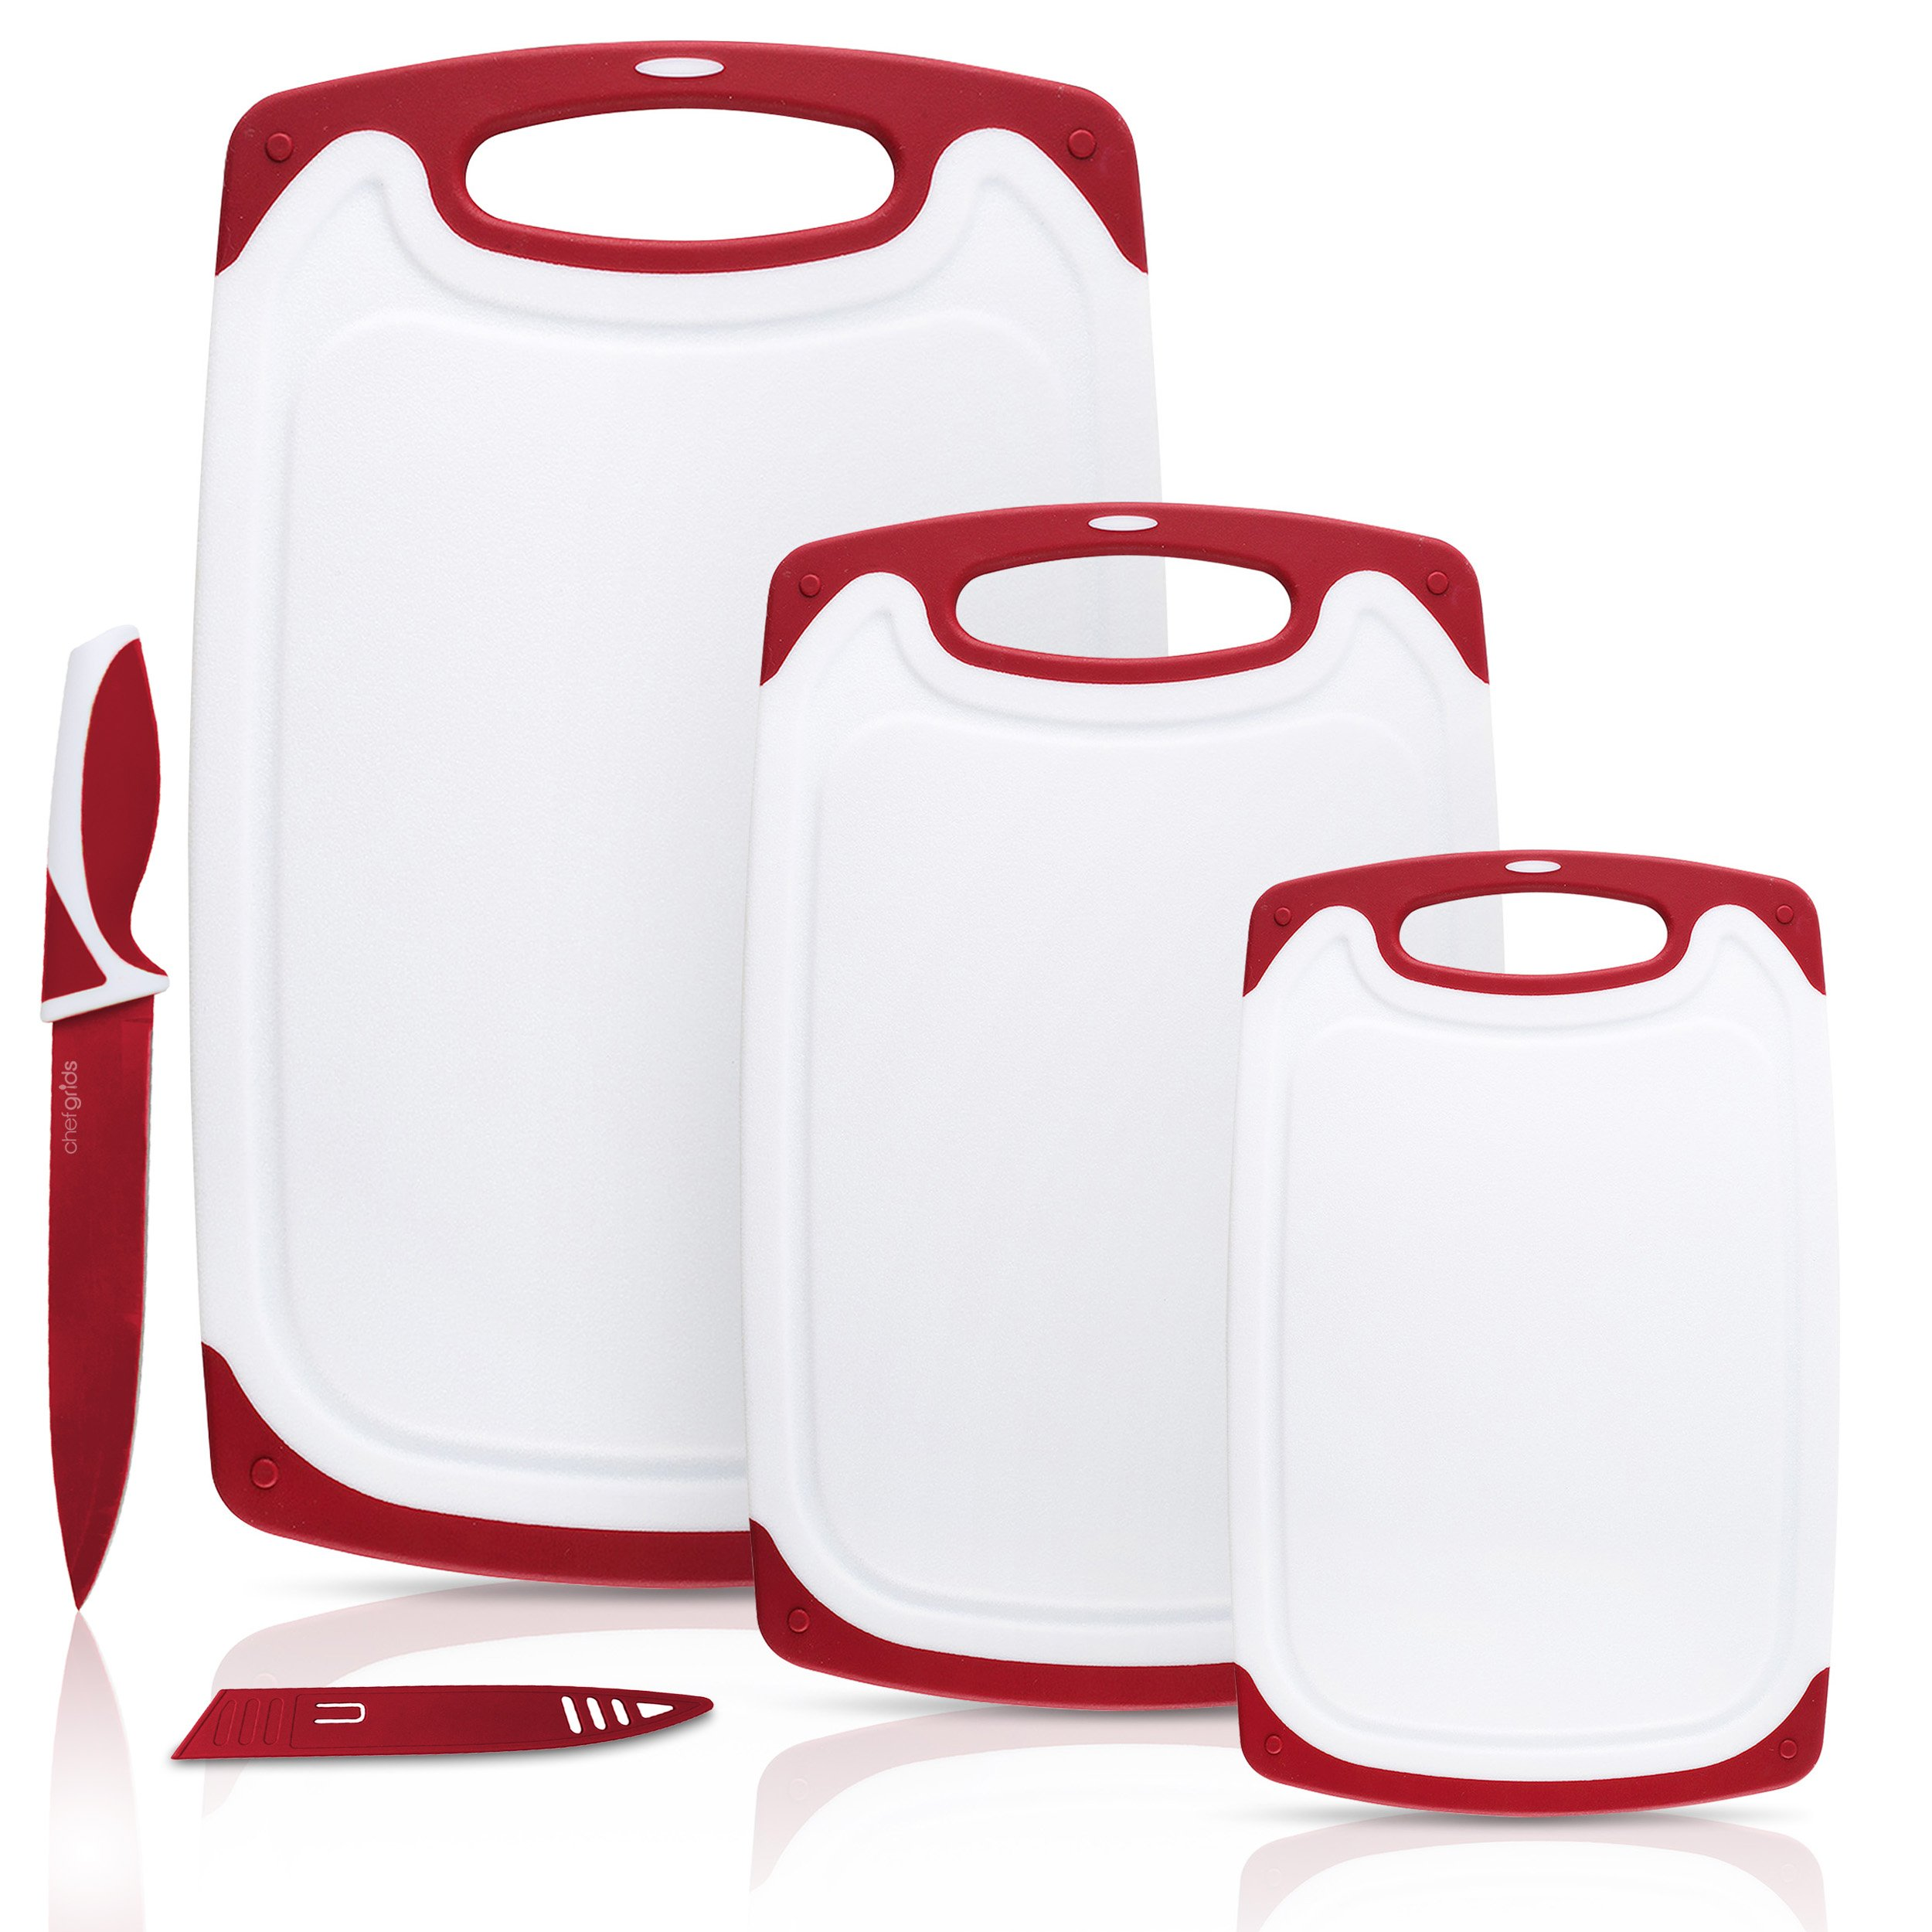 Chef Grids Durable Plastic Cutting Board Set 3 Piece Chopping Board Thick Plastic for Vegetable Meat or Cheese with Non-Slip Feet and Handles Deep Drip Juice Groove   Dishwasher Safe   Plus Knife Red